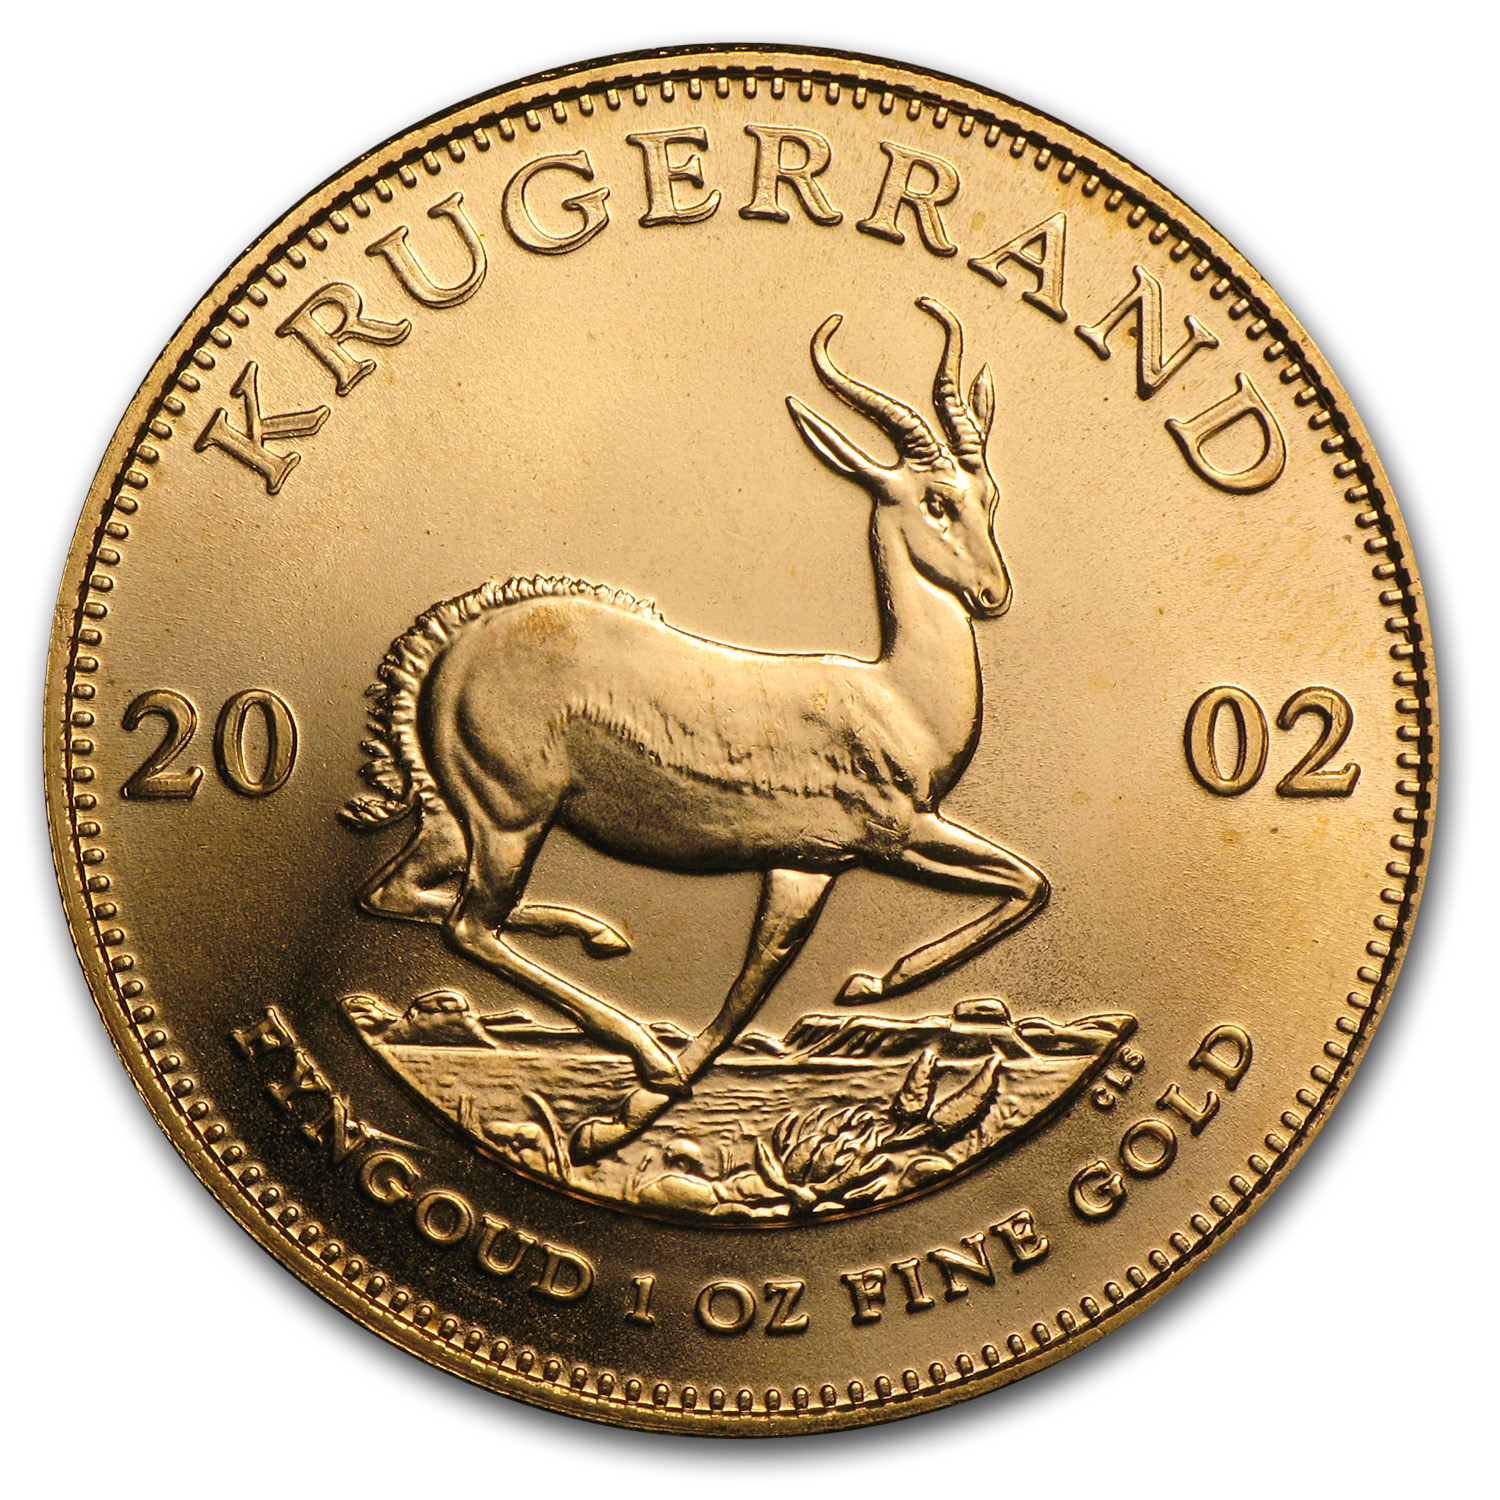 2002 South Africa 1 oz Gold Krugerrand